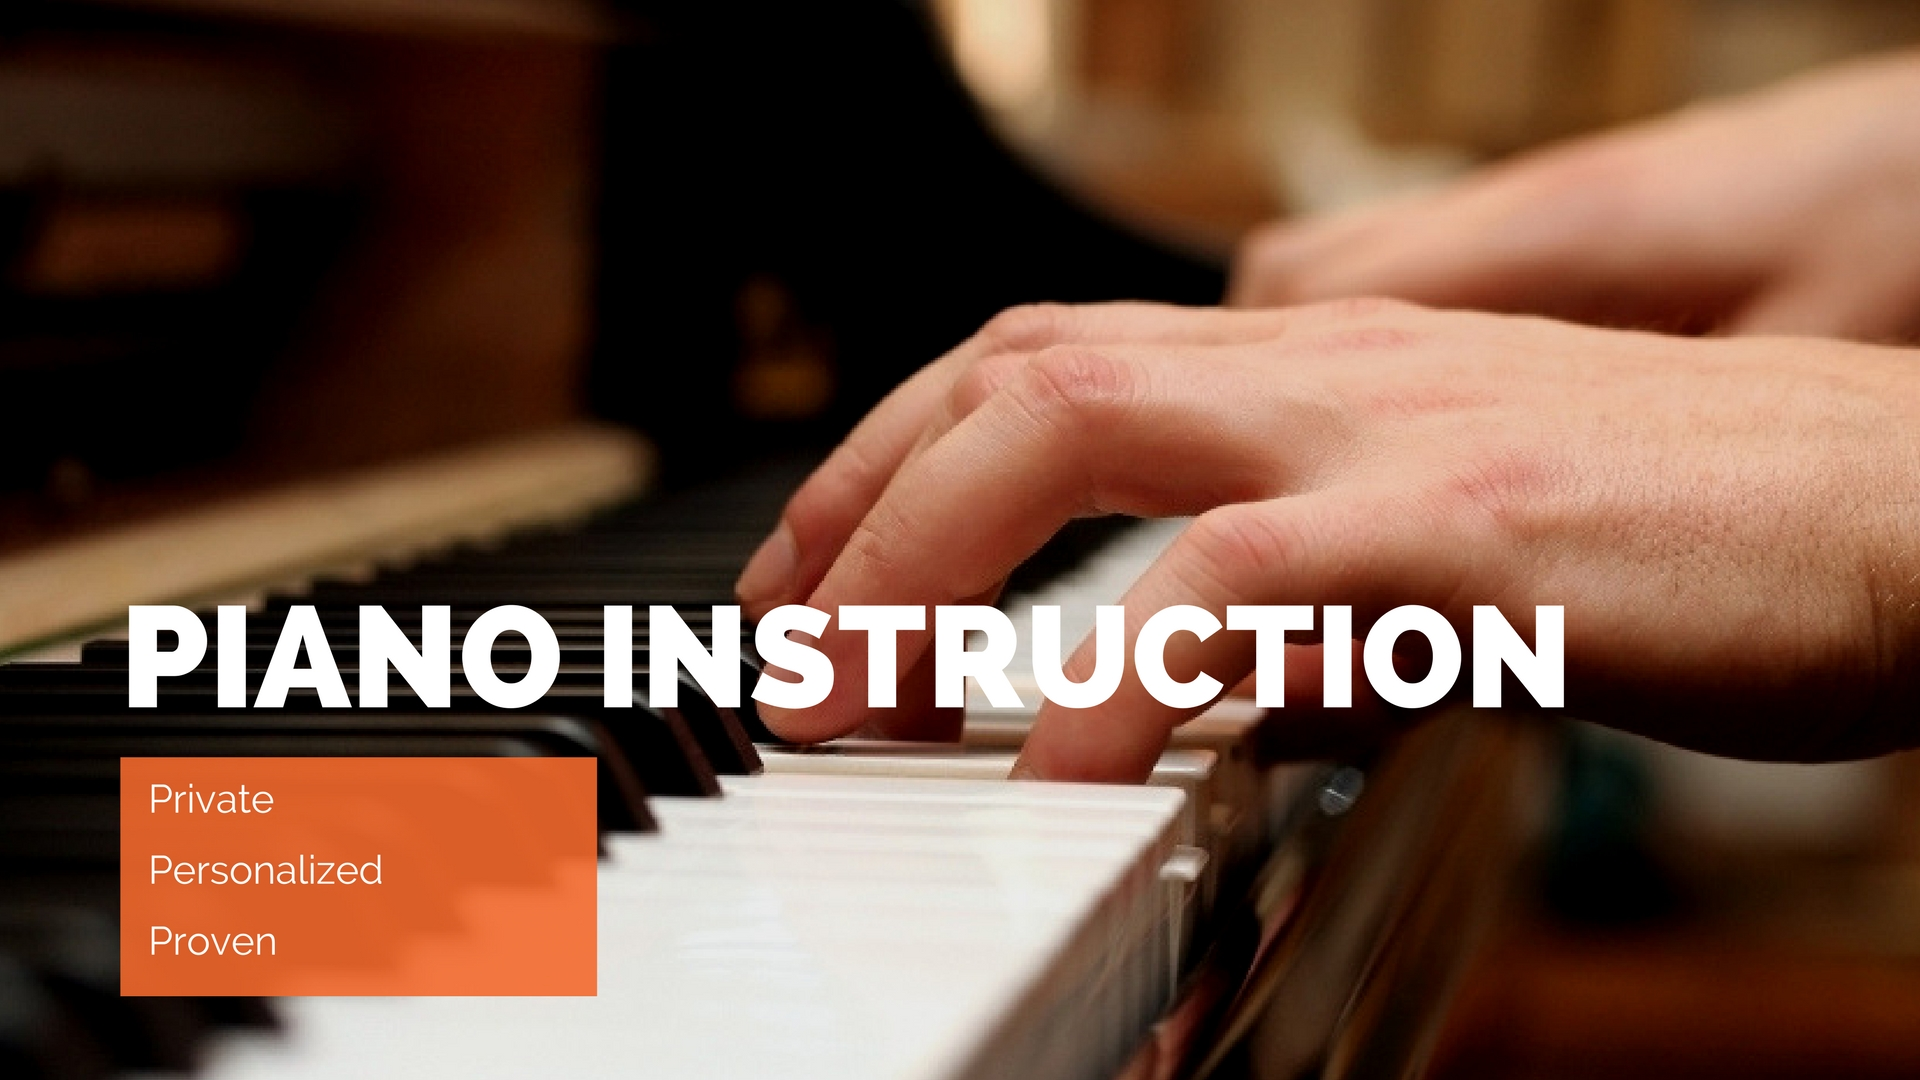 Copy of piano instruction (4).jpg